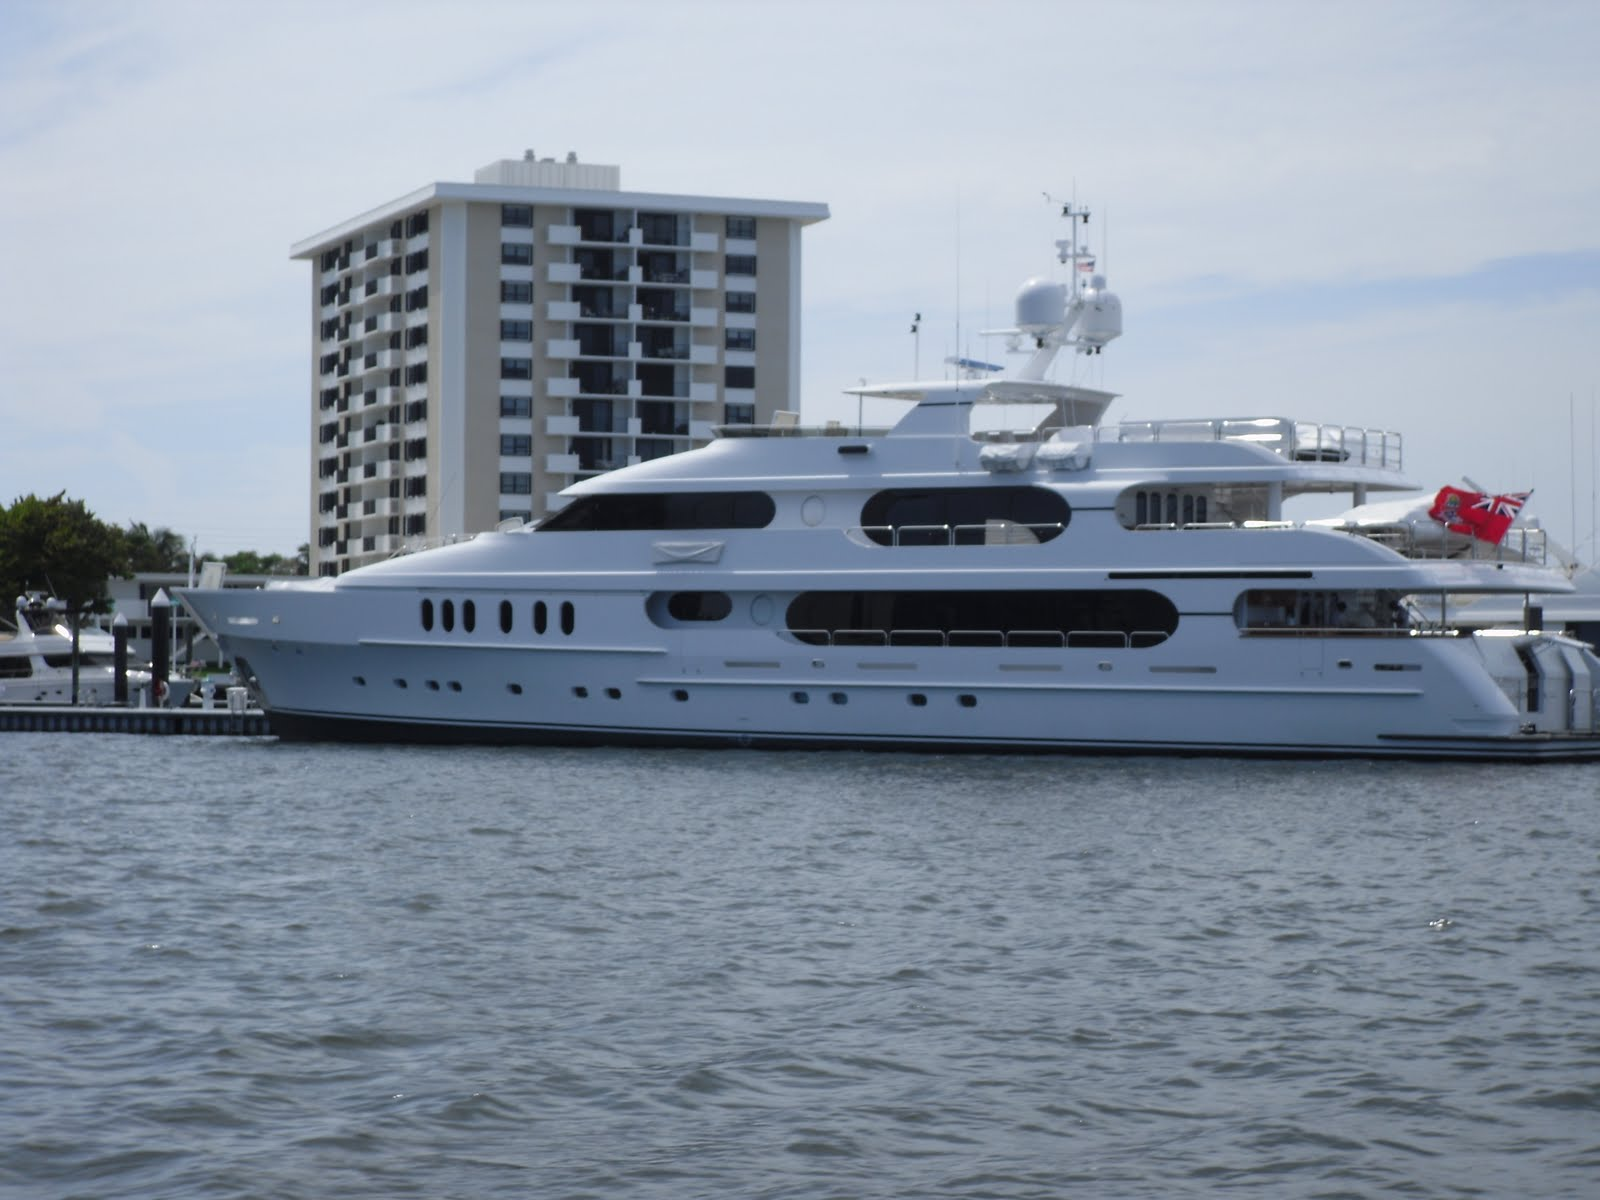 jupiter real estate and lifestyle  tiger woods u0026 39  yacht  new